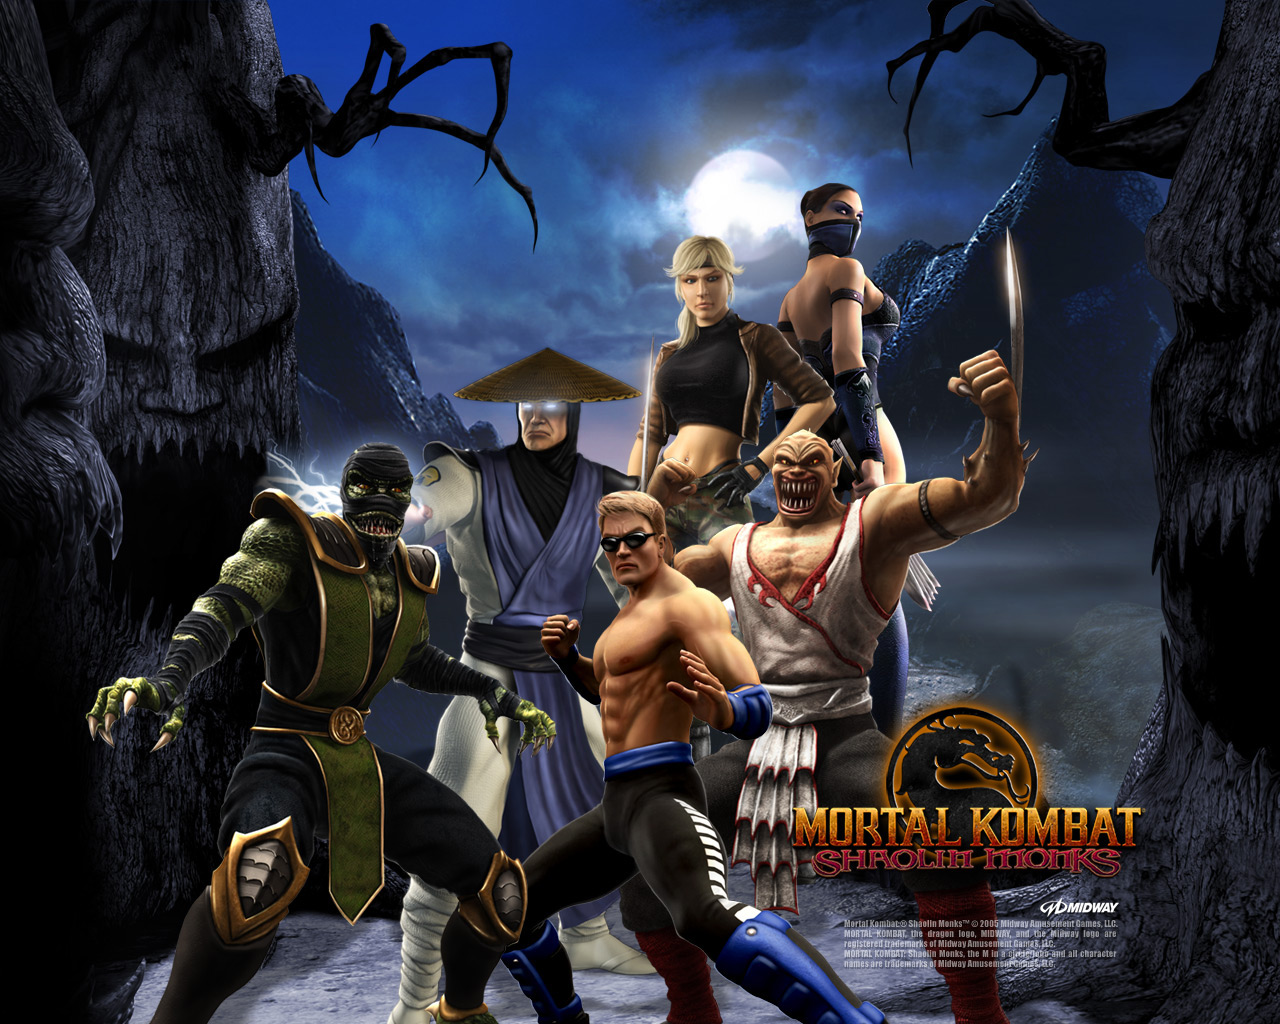 CHEATS FOR MORTAL KOMBAT SHAOLIN MONKS PS2 UNLOCK CHARACTERS